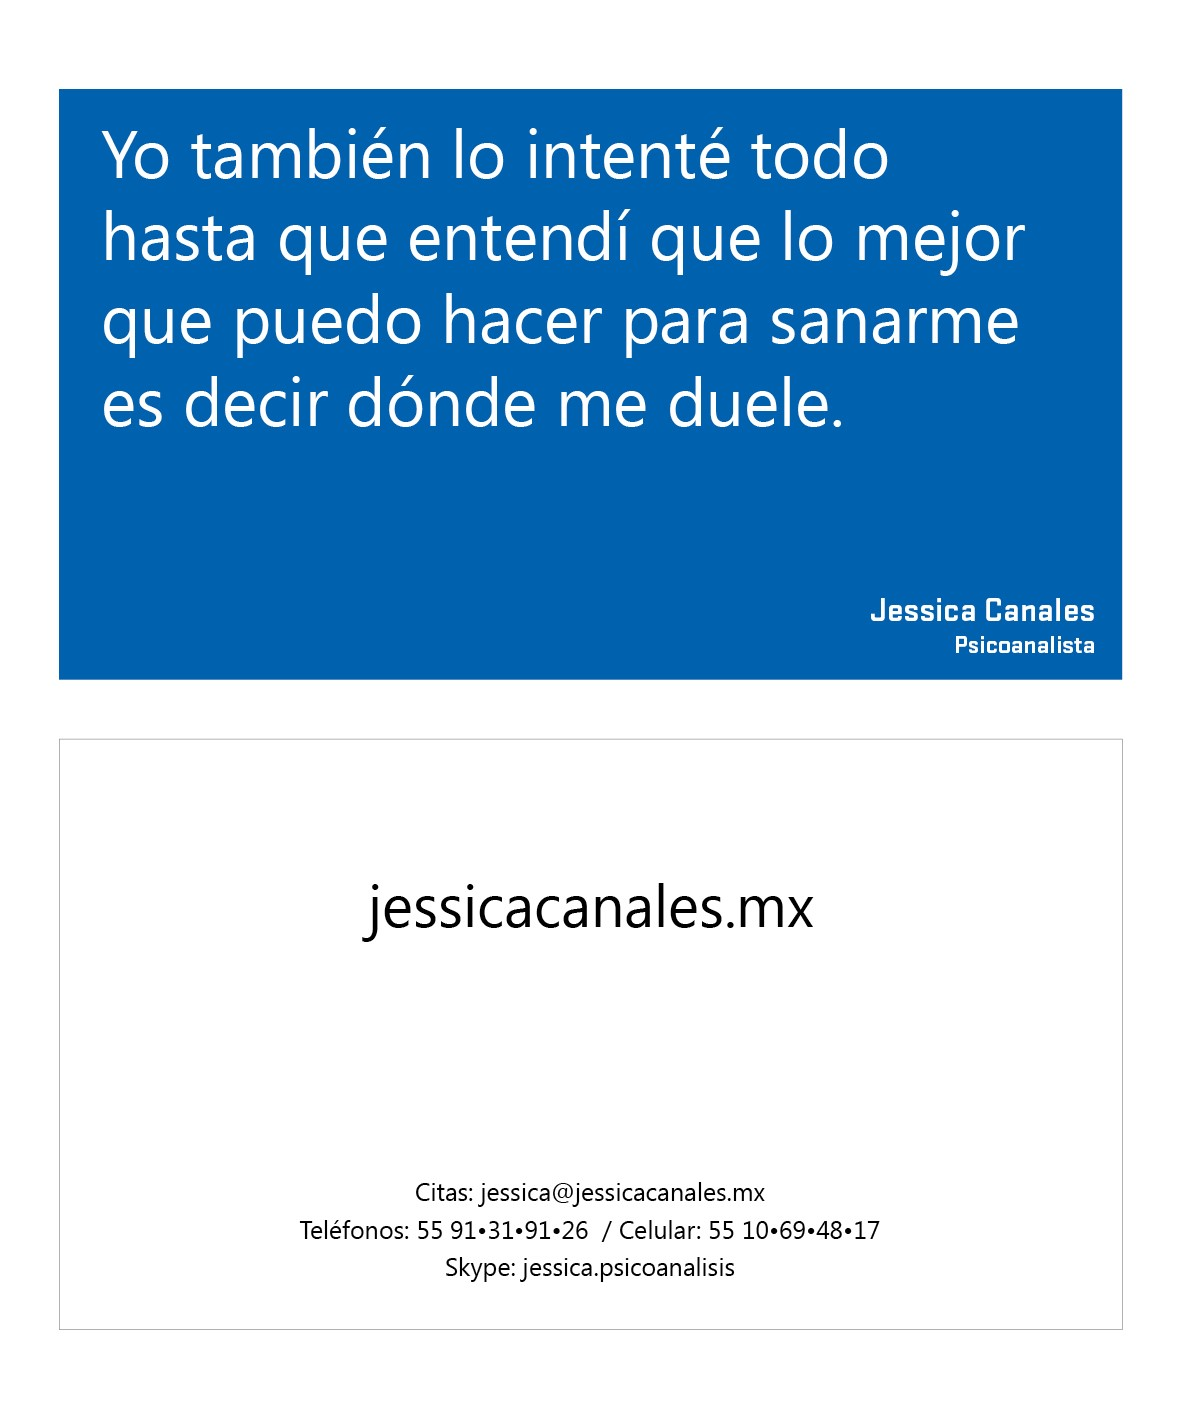 jessica canales